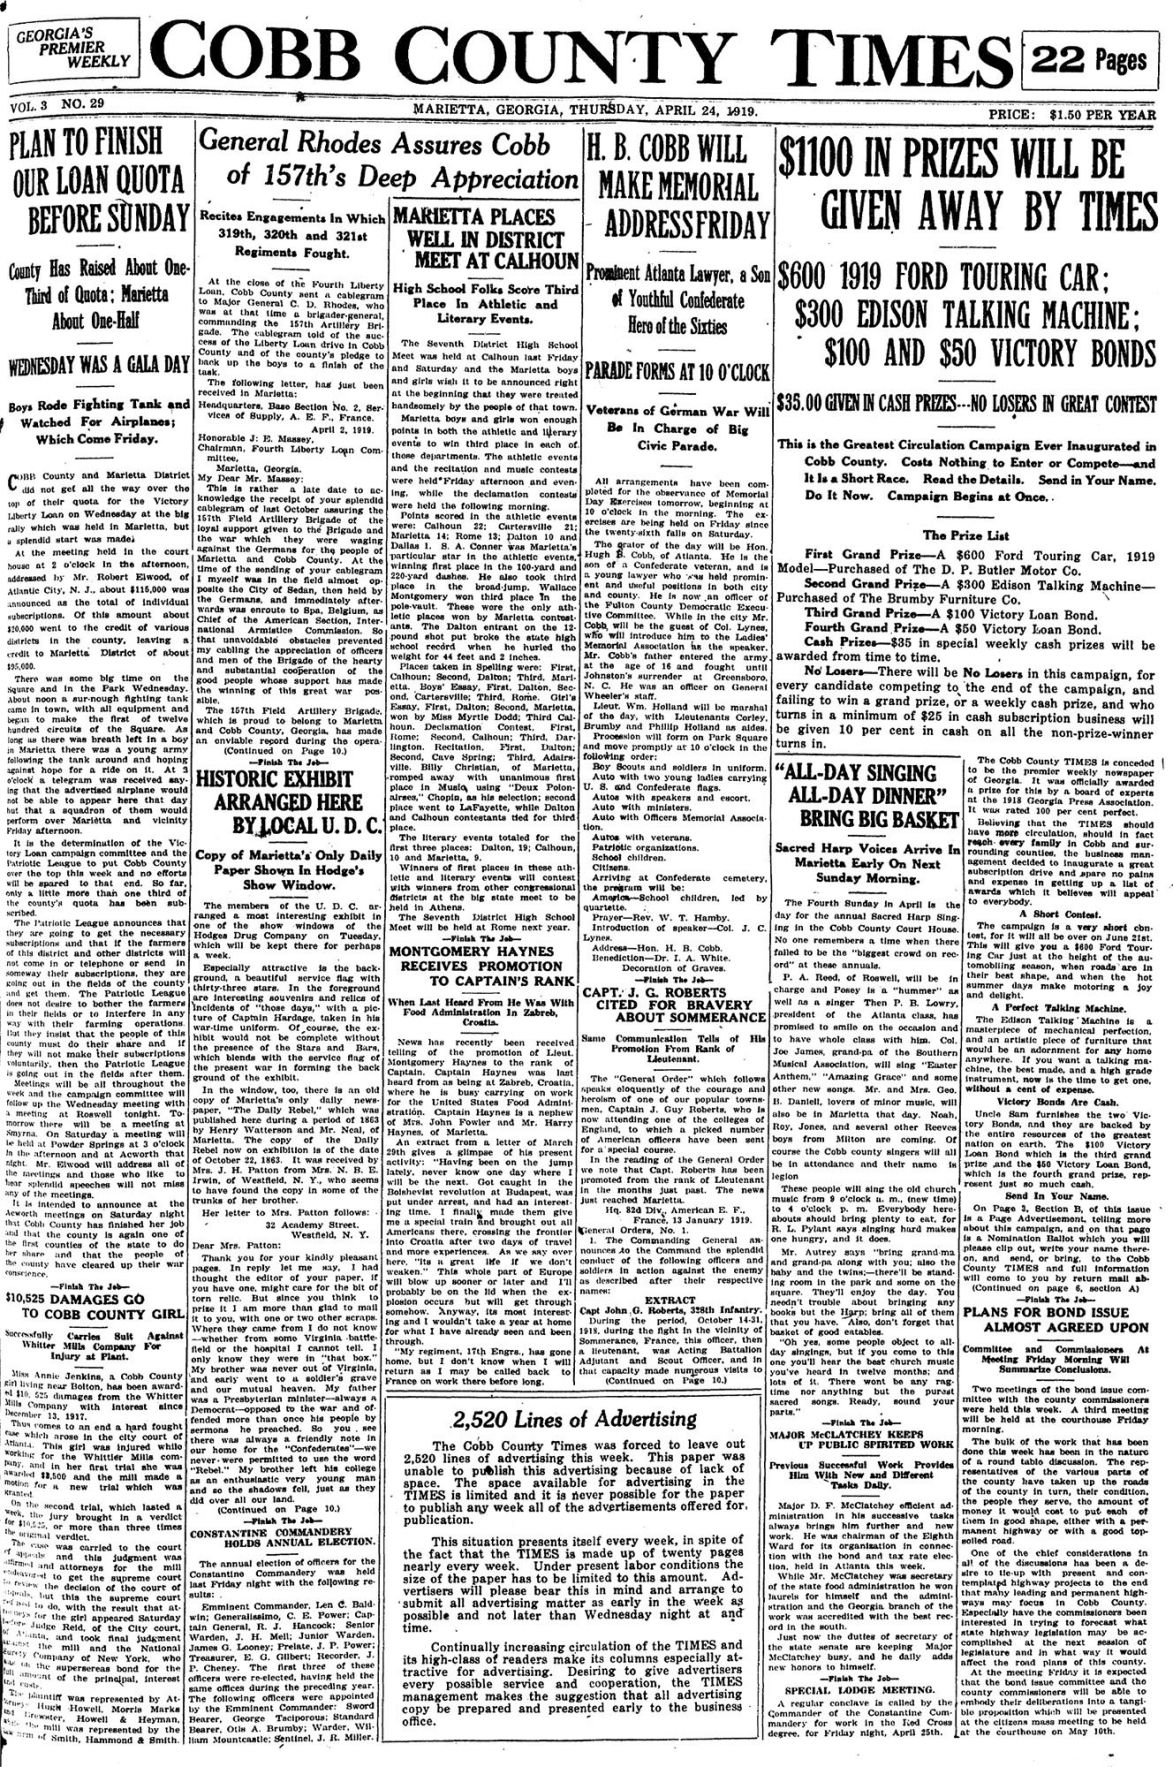 042819_MDJ_Time_Capsule_04241919_TIMES_Front.jpg